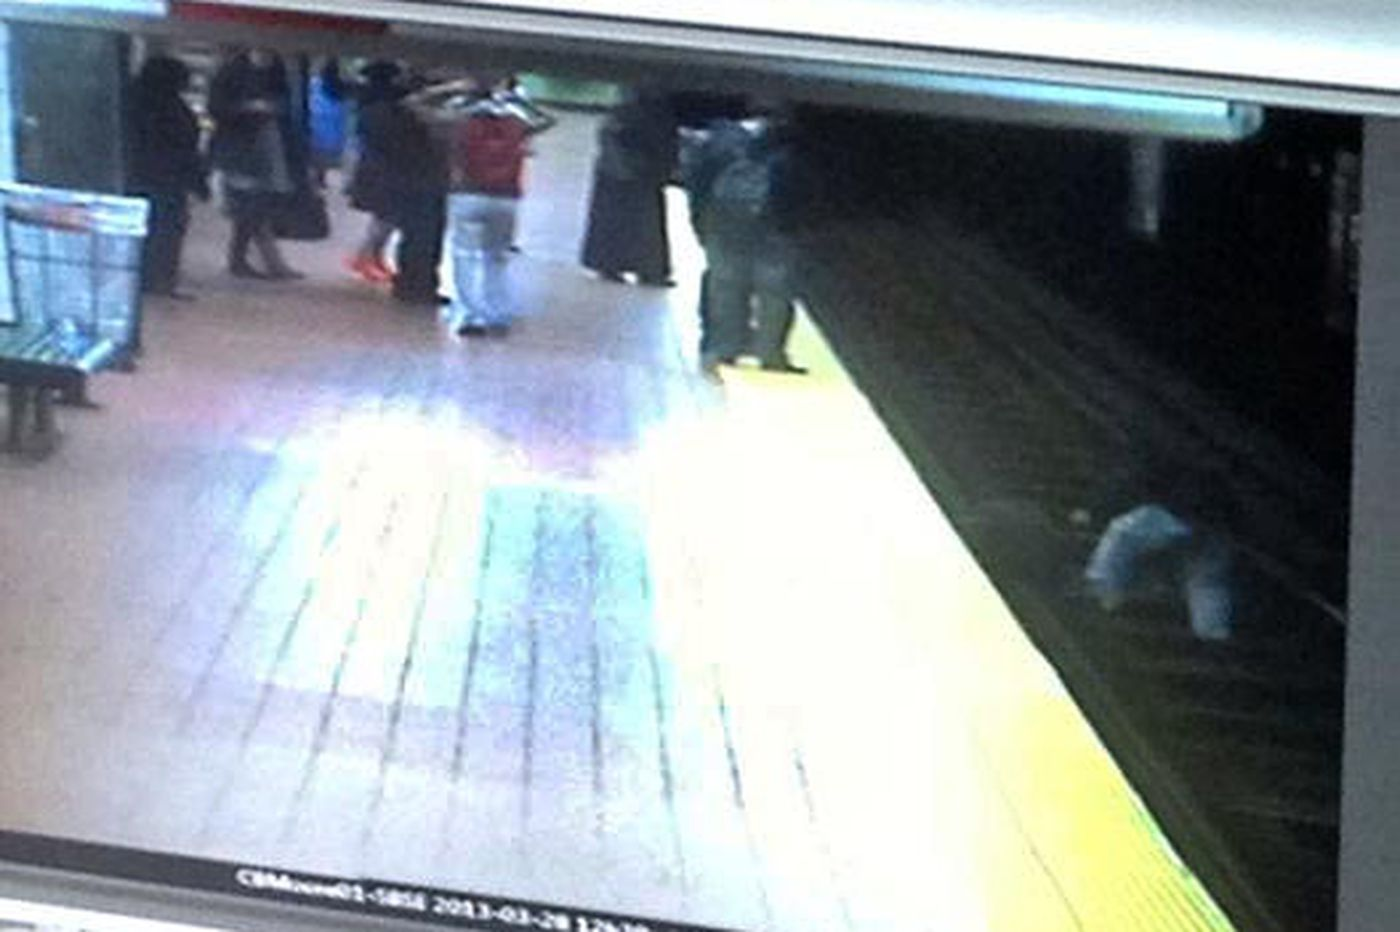 New to Philly, man becomes city hero for subway rescue